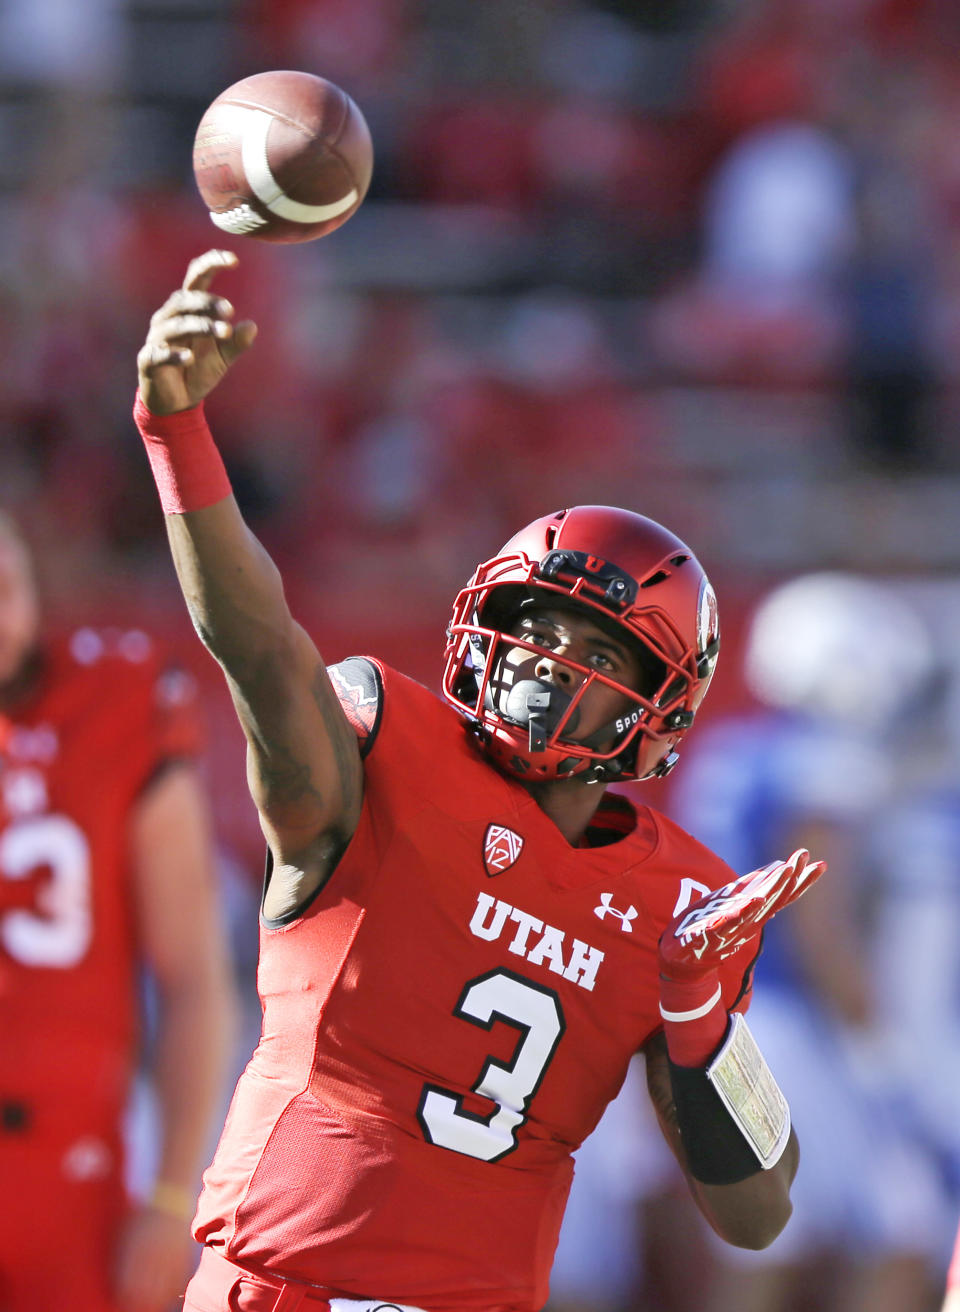 <p>Trending down: Troy Williams, Utah — 2017 is a big test for the talent Utah coach Kyle Whittingham brings to Salt Lake City. Just four starters return on the Utes' offense and three of the team's four leading receivers from a year ago are gone. Oh, and so is RB Joe Williams who averaged nearly 7 yards a carry in 2016. Can Troy Williams improve on his 53 percent completion percentage while also being the focal point of the offense? </p>